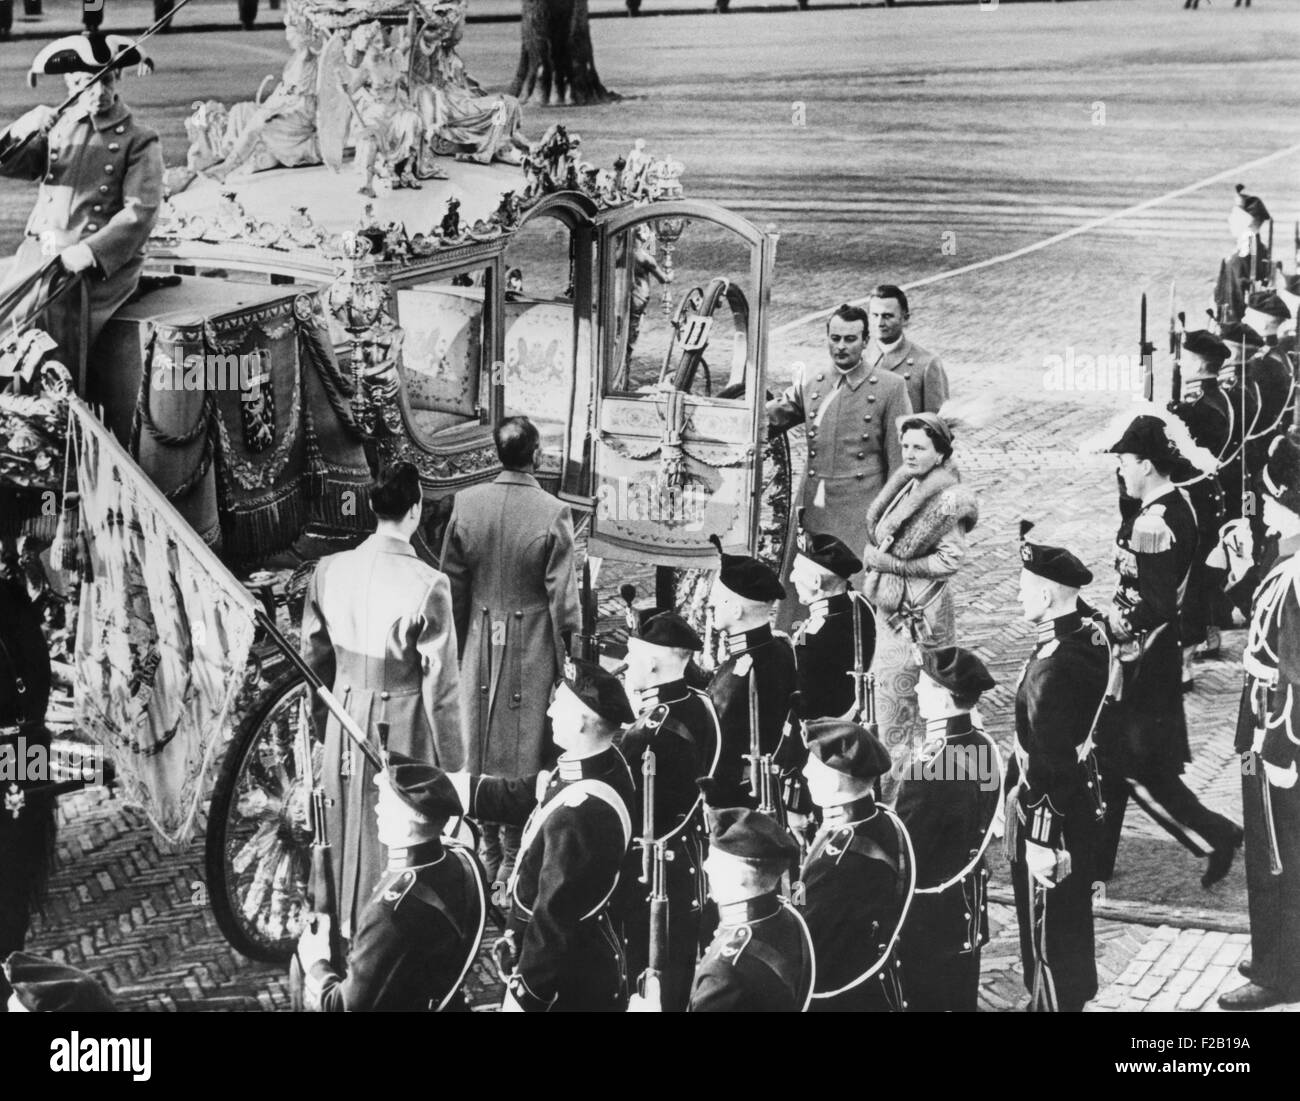 Carriage to take Queen Juliana and Prince Bernhard to sign of Statute for the Dutch kingdom. Dec. 19, 1954. 'Charter - Stock Image